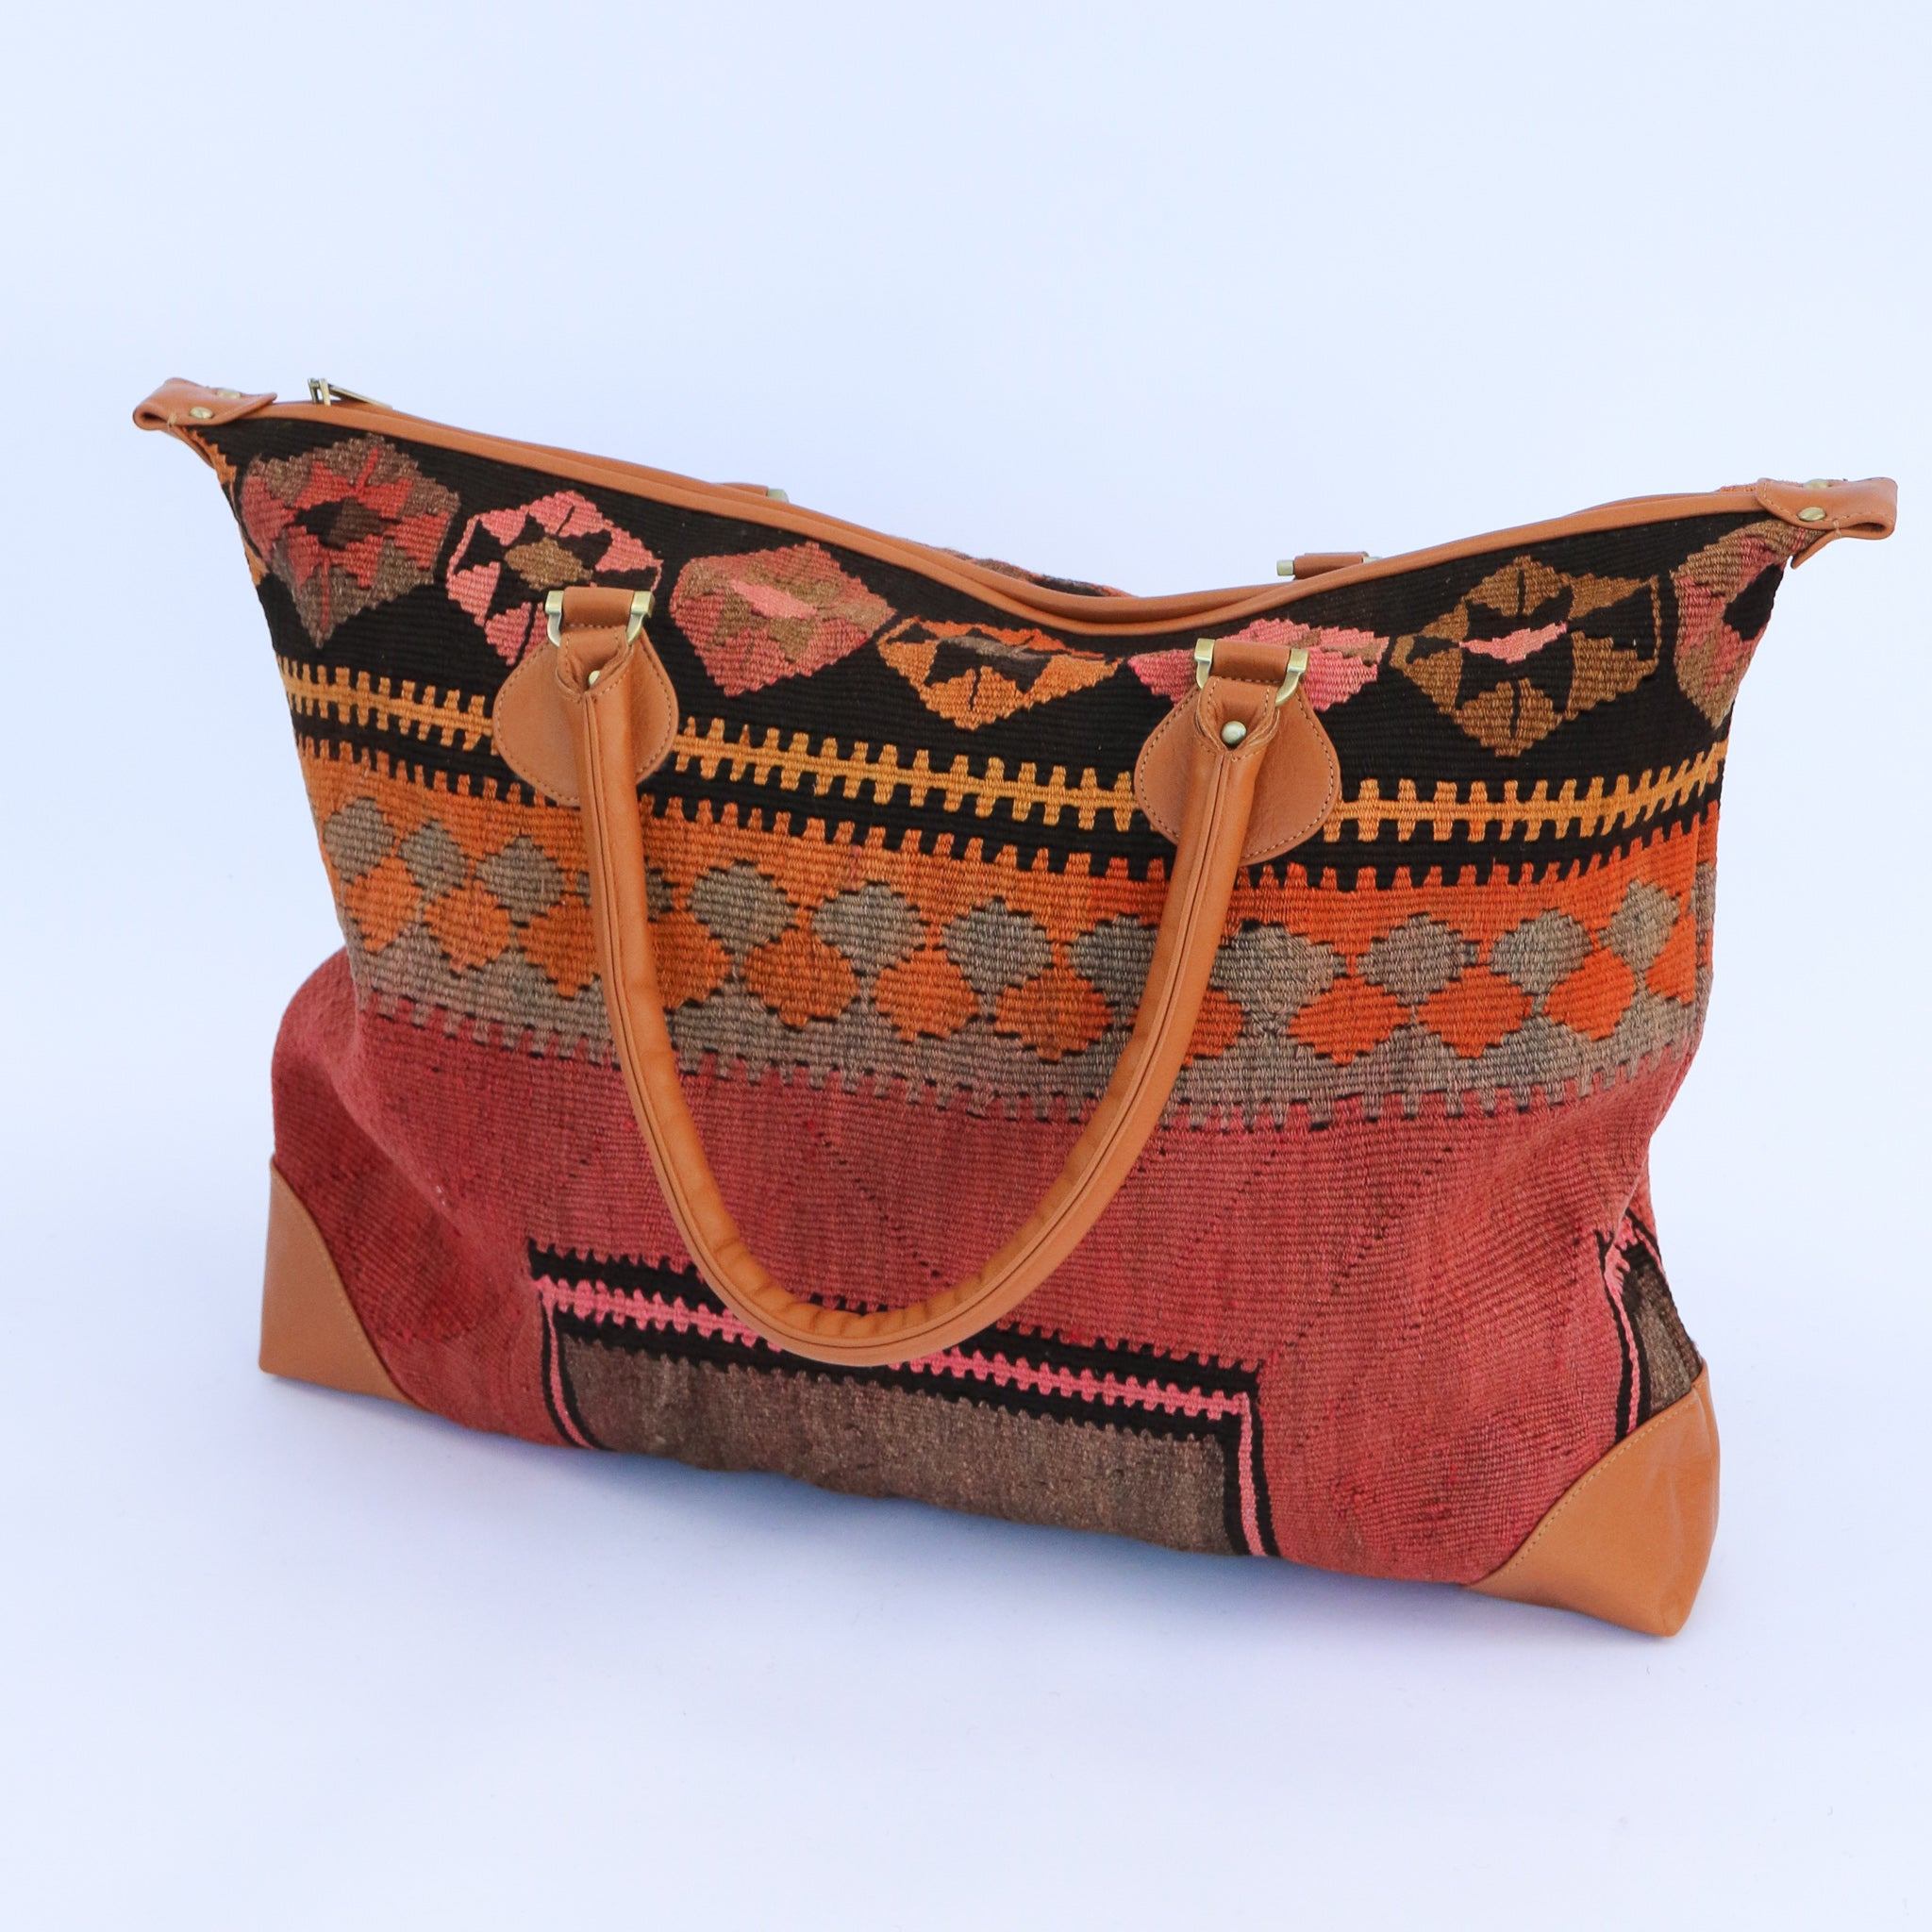 Kilim & Leather Day Bag #15